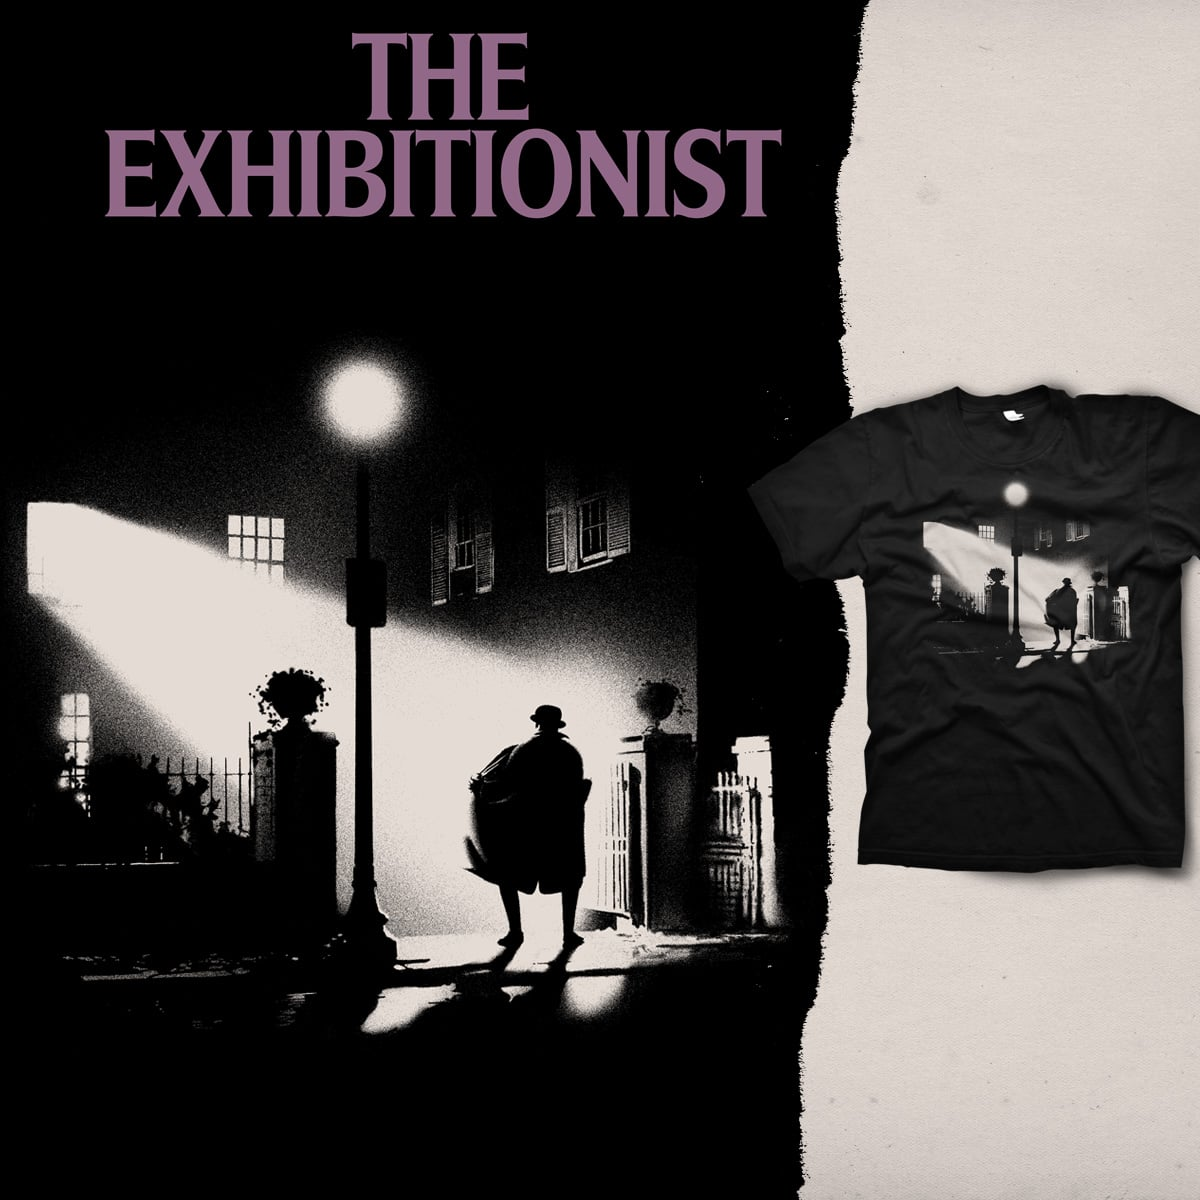 The Exhibitionist by mathiole on Threadless